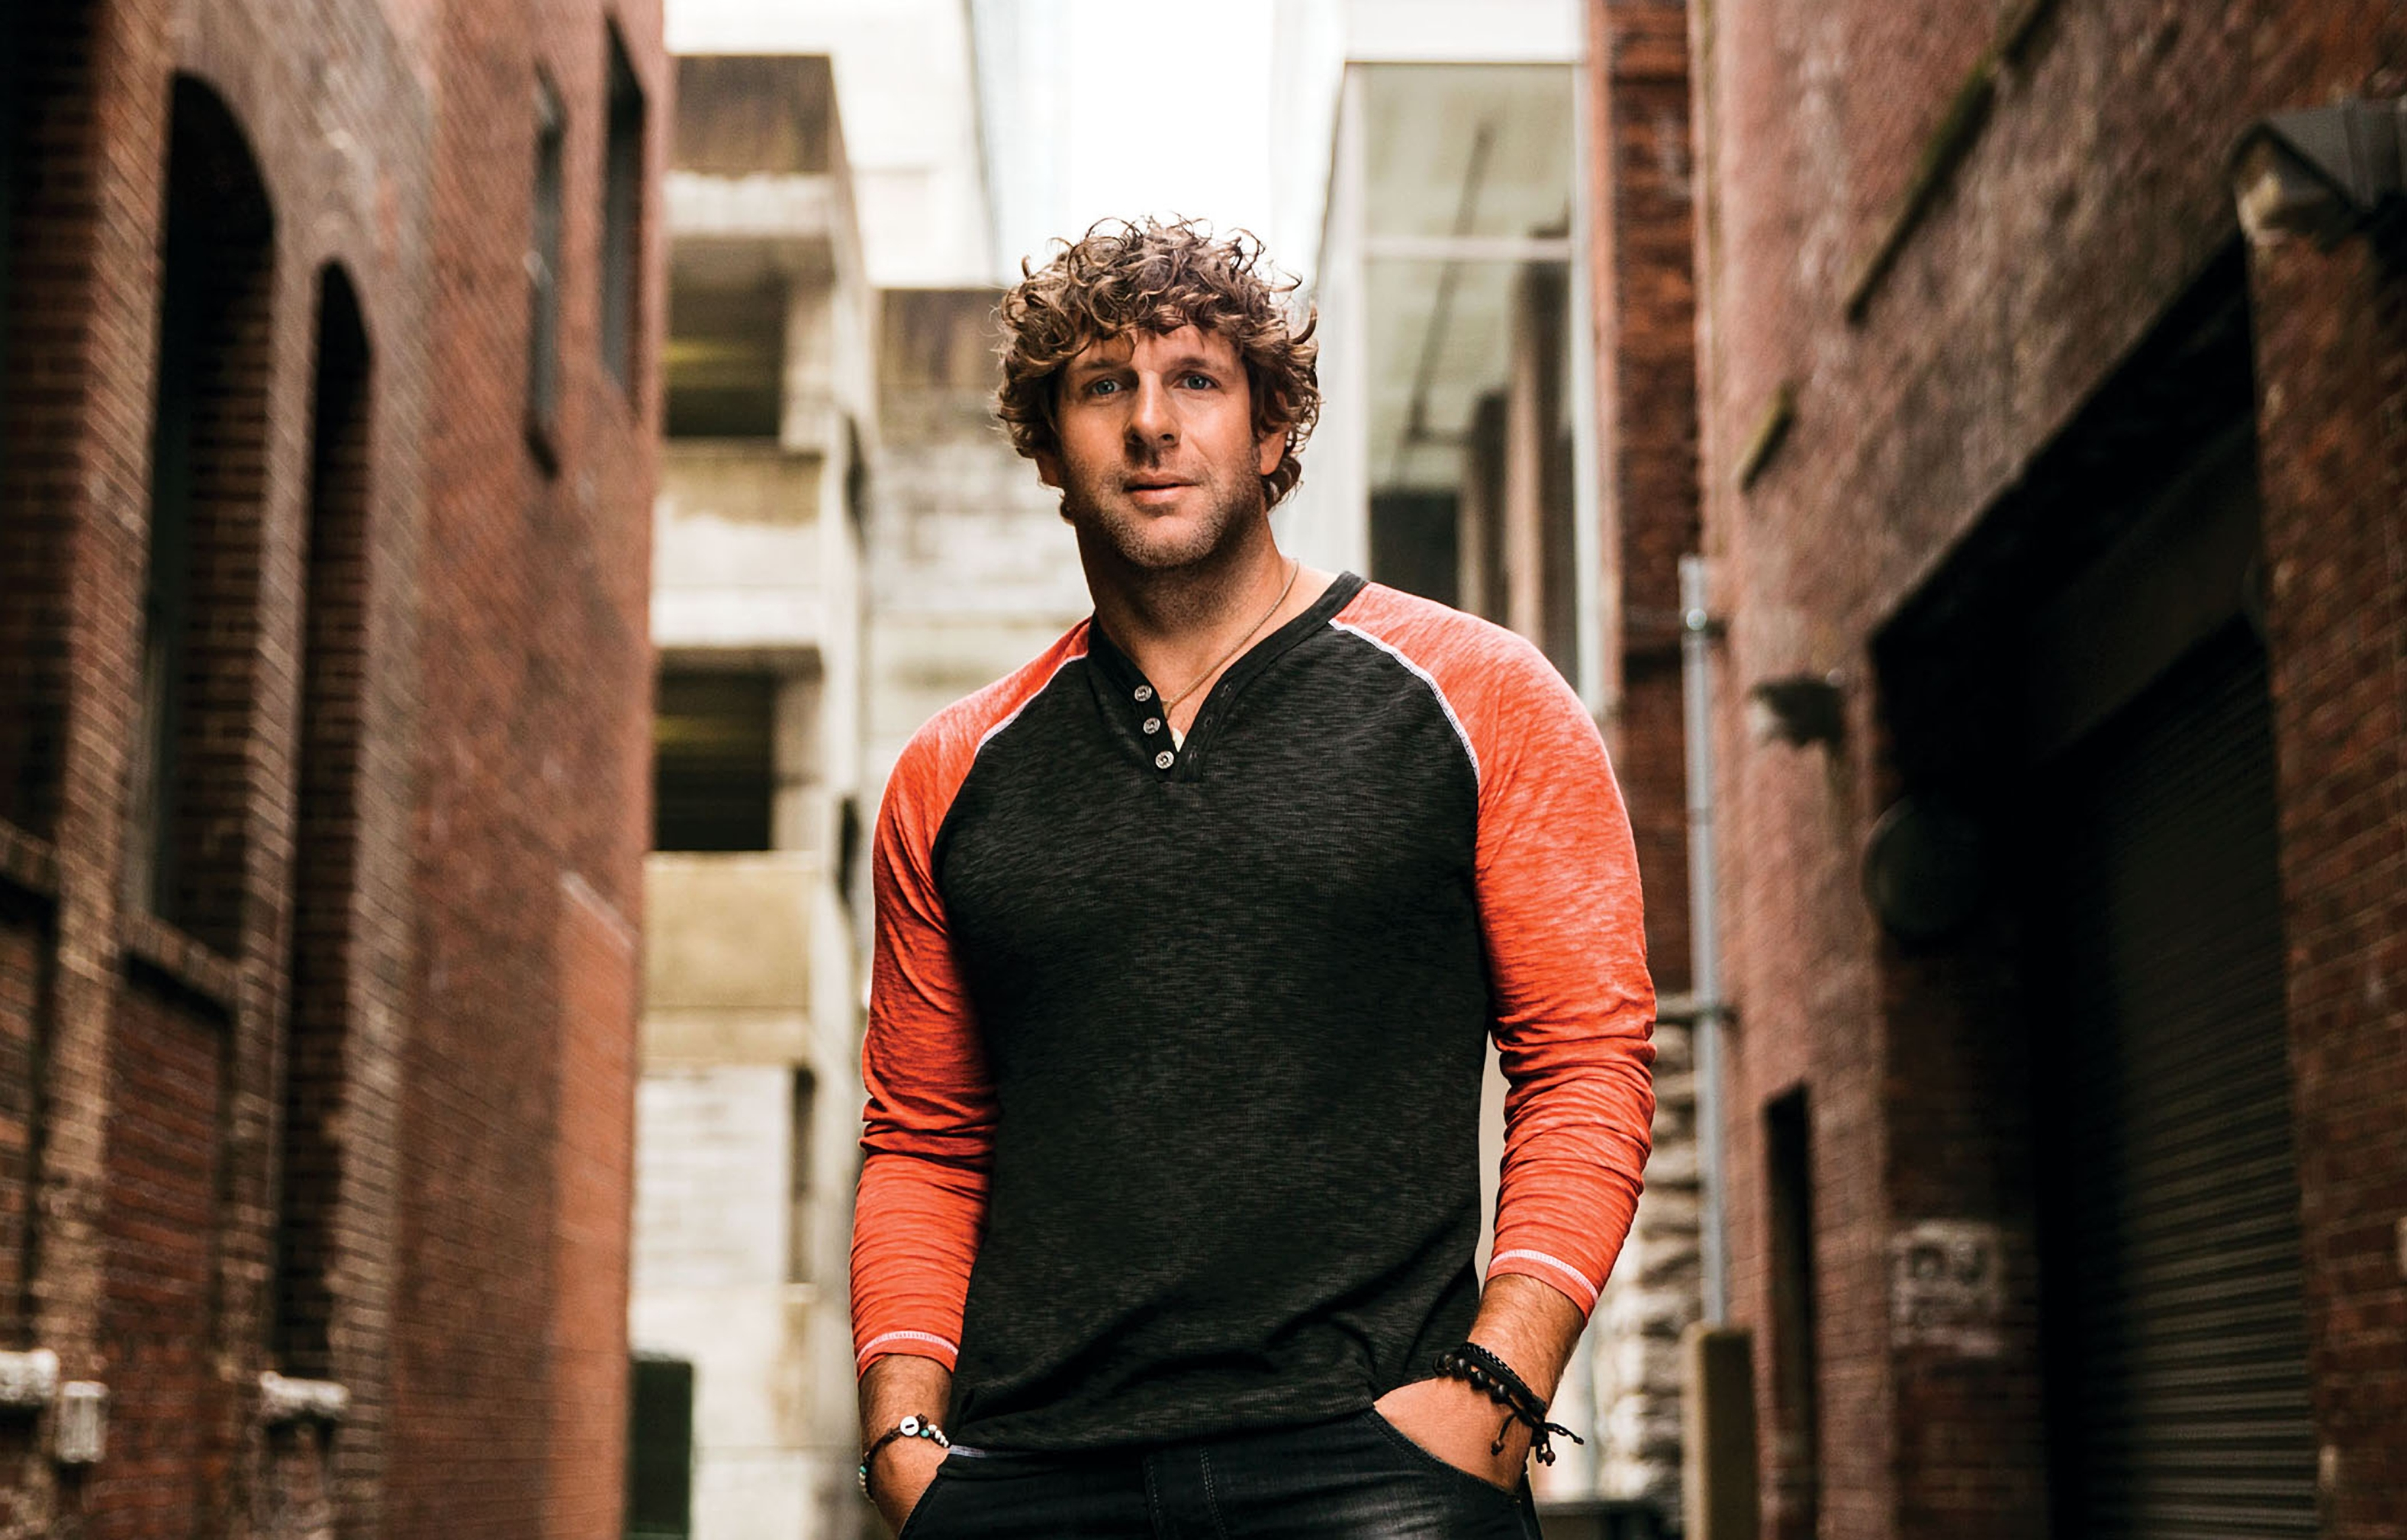 BILLY CURRINGTON'S 'IT DON'T HURT LIKE IT USED